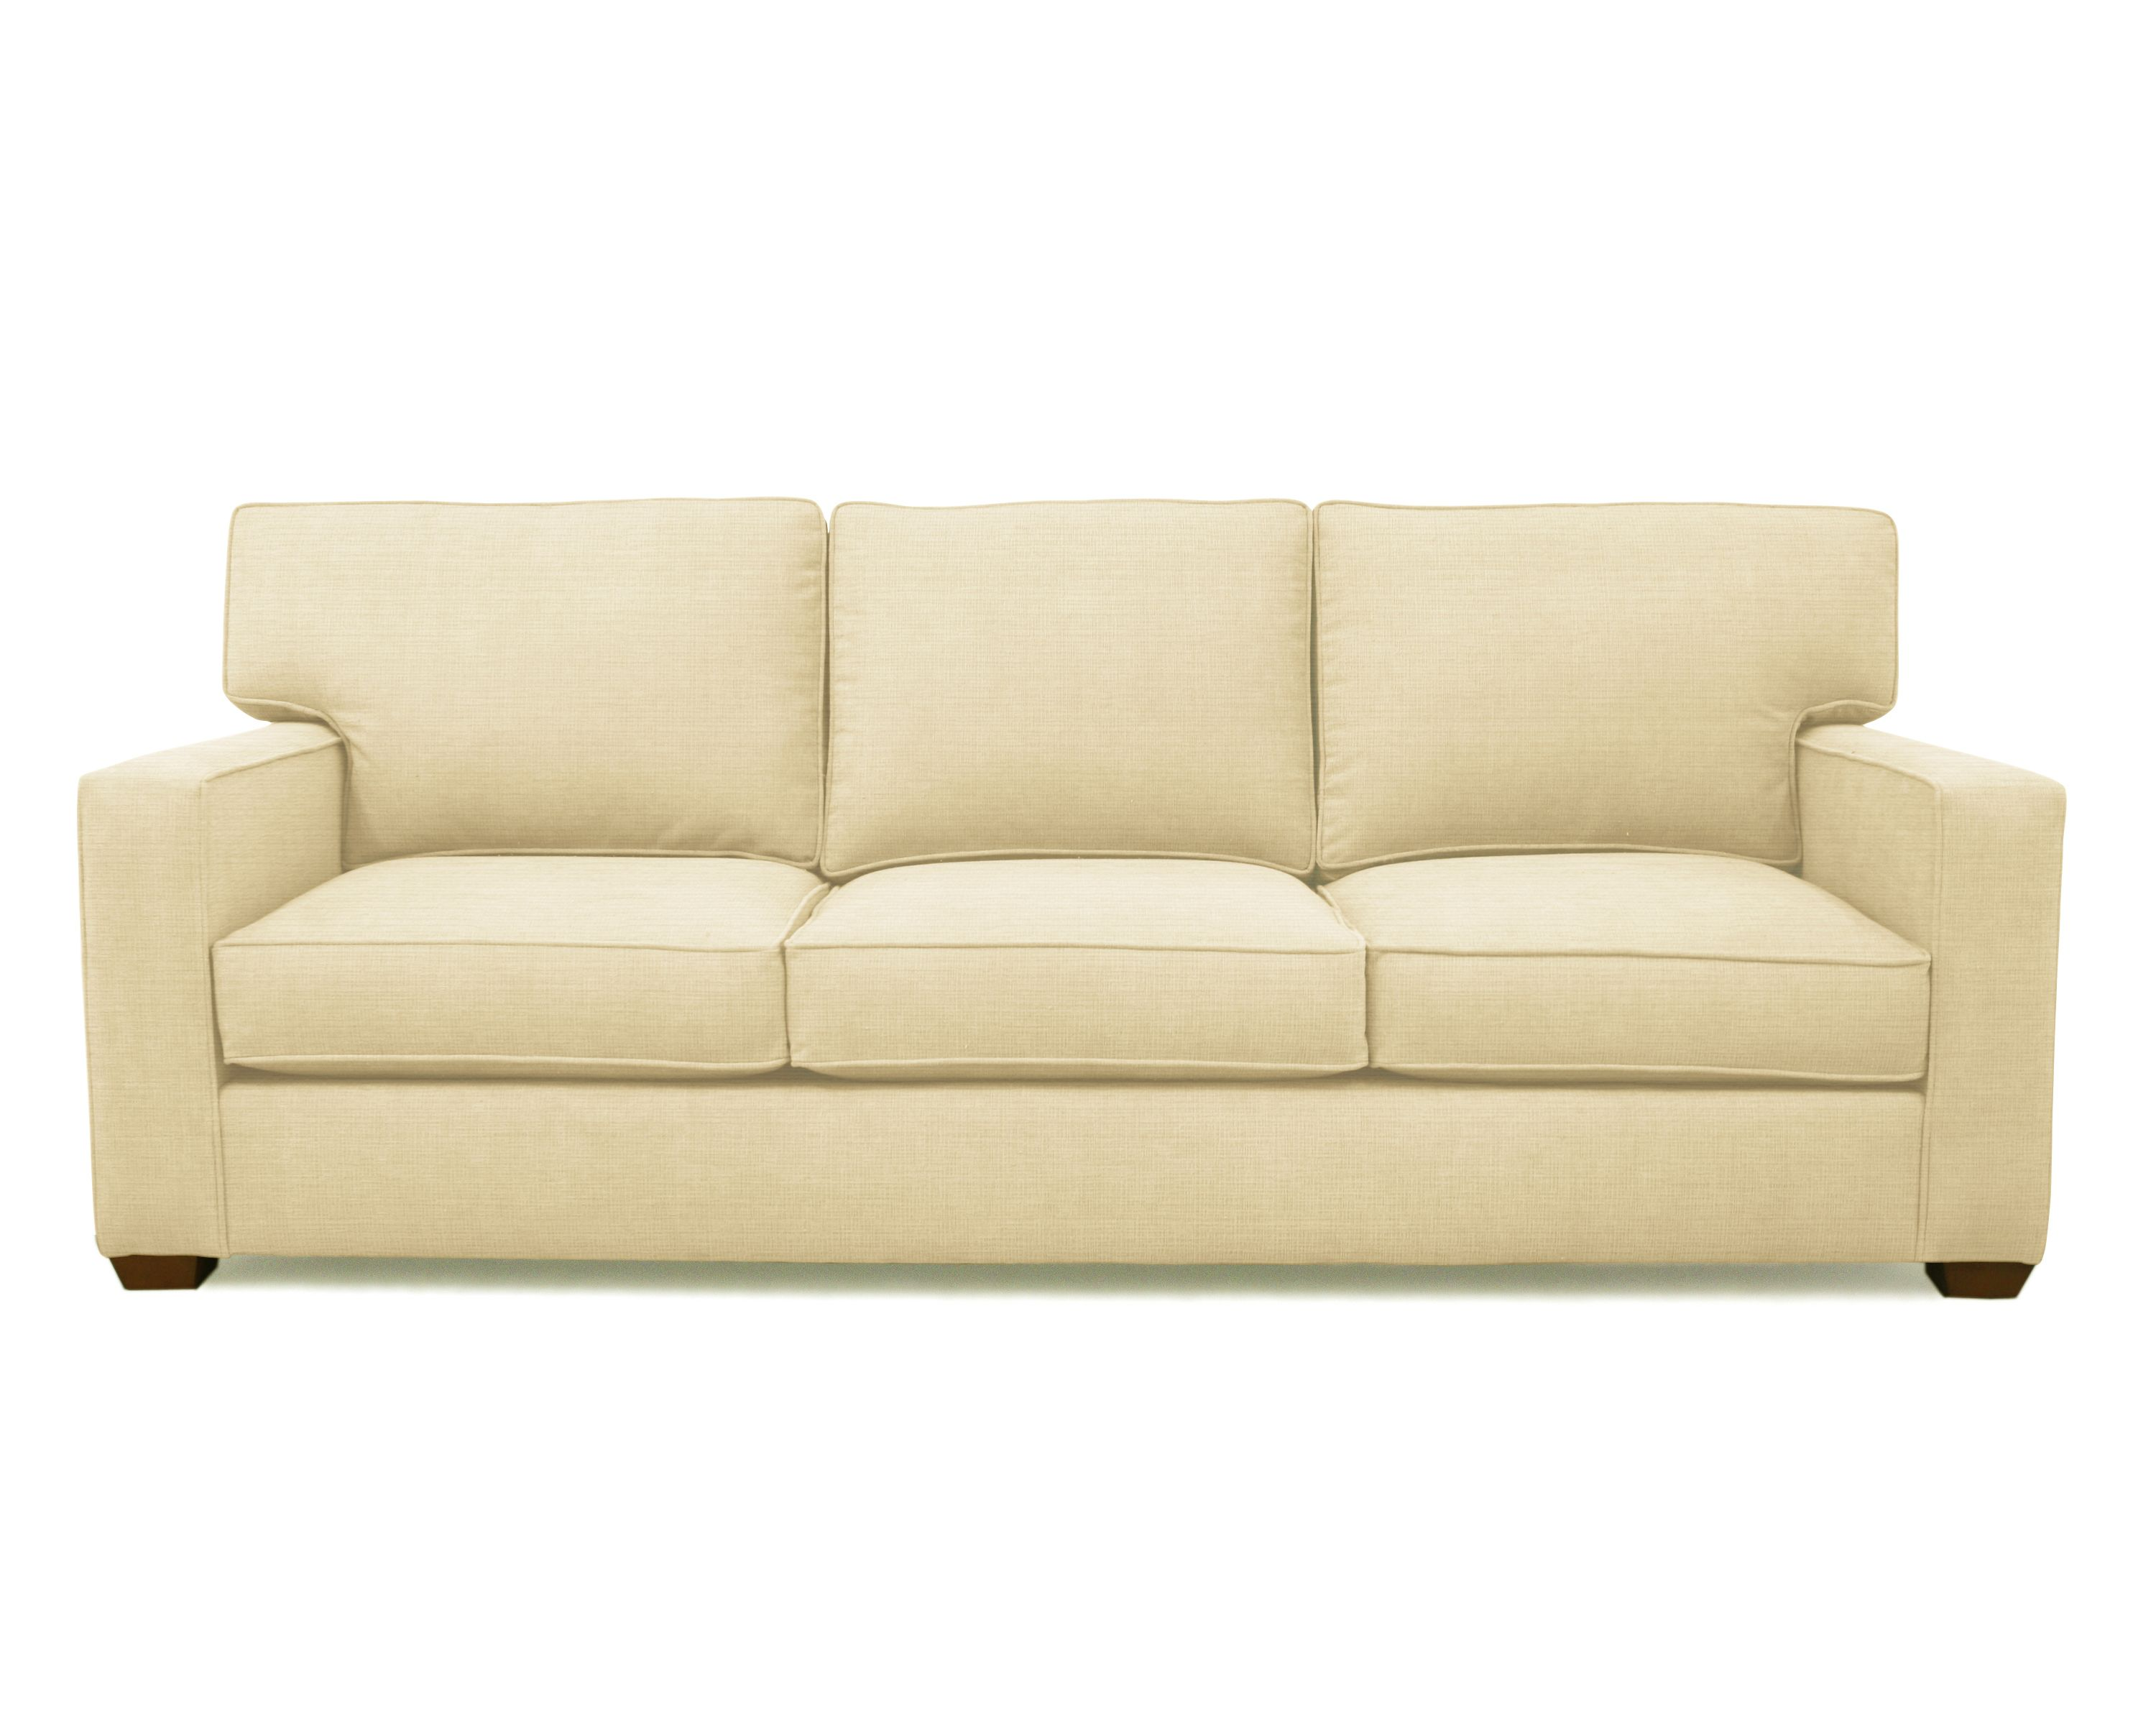 Cool Crypton Sofa Trend Crypton Sofa 61 For Sofas And Couches